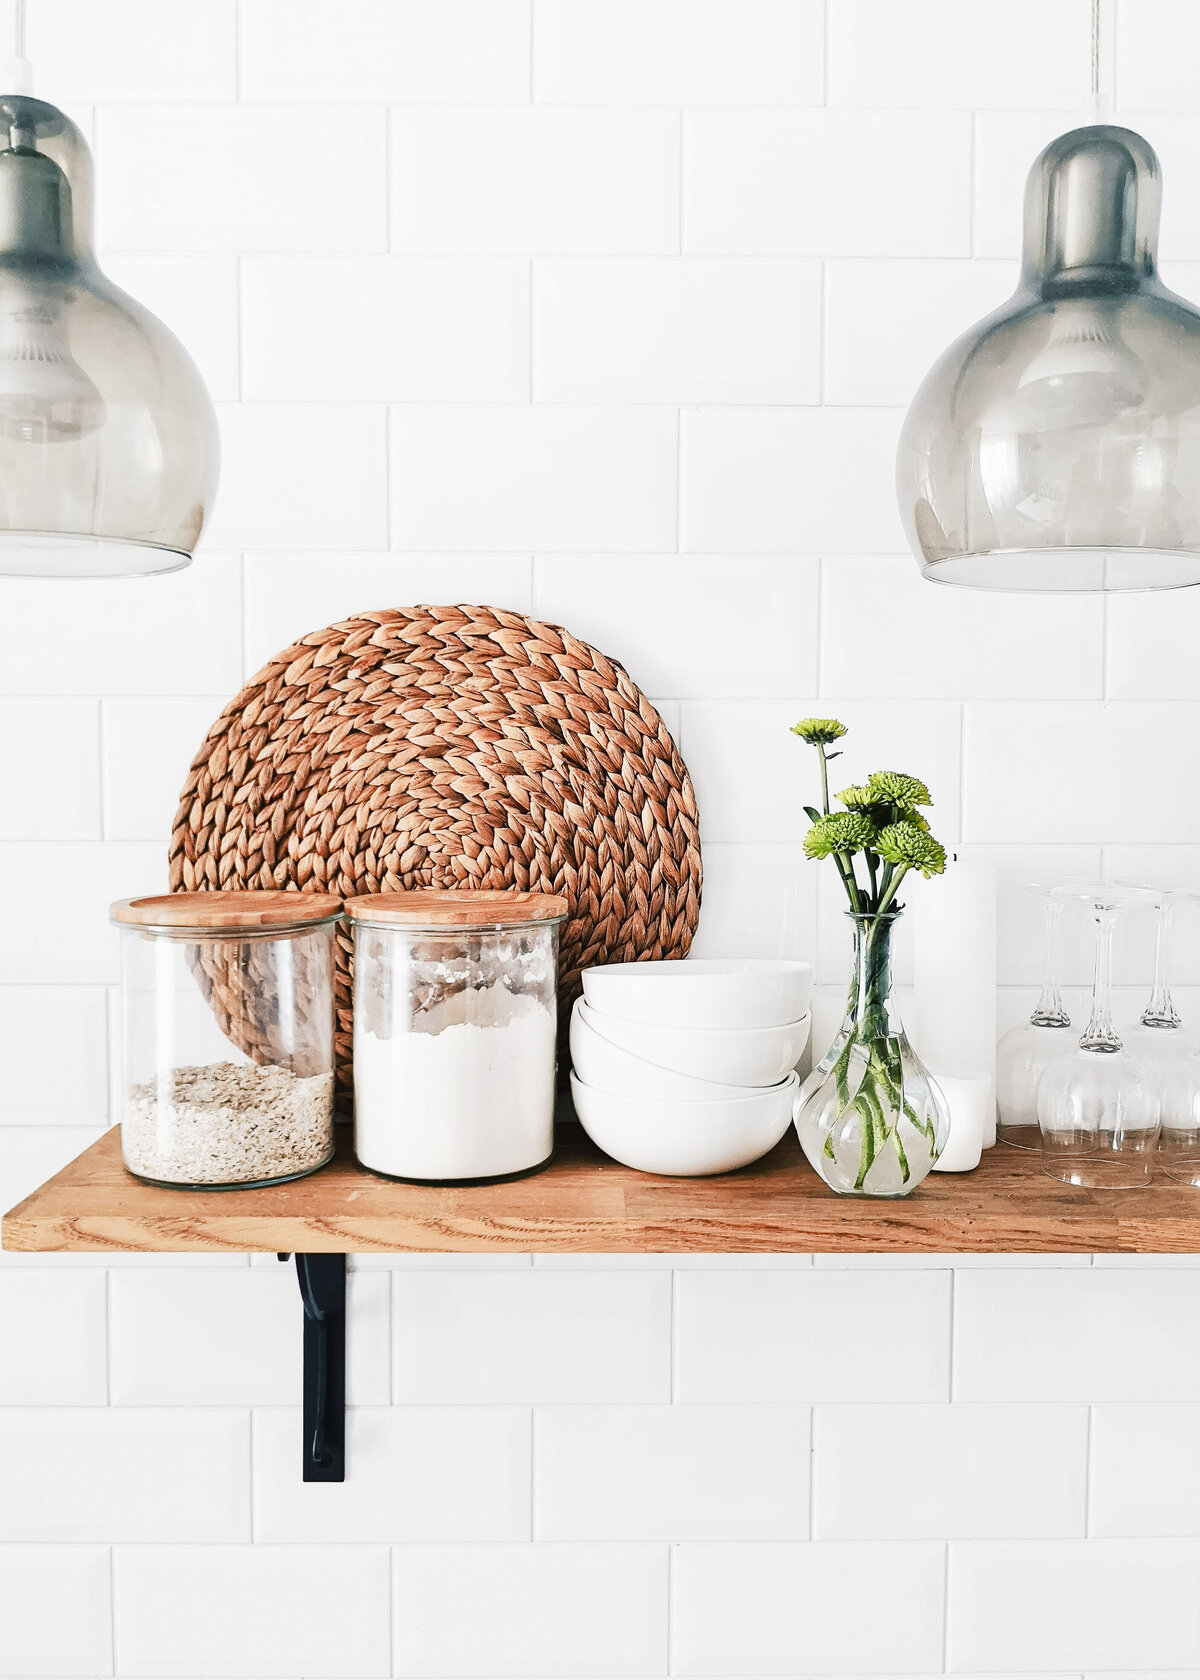 A wooden shelf holds a rattan placemat against a white tiled wall with smoky glass pendants.